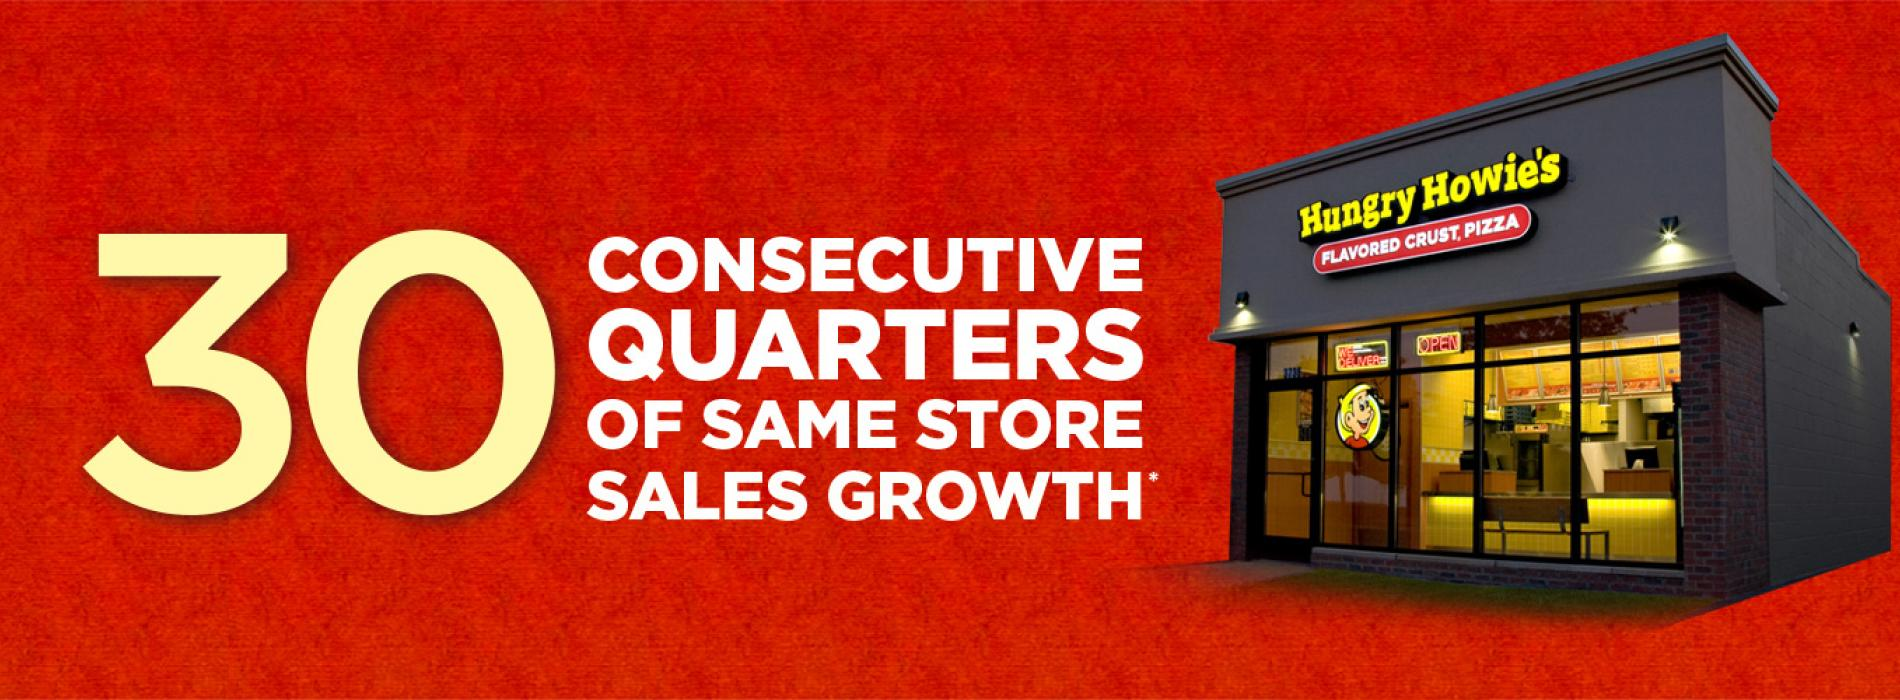 30 Consecutive Quarters of Sales Growth